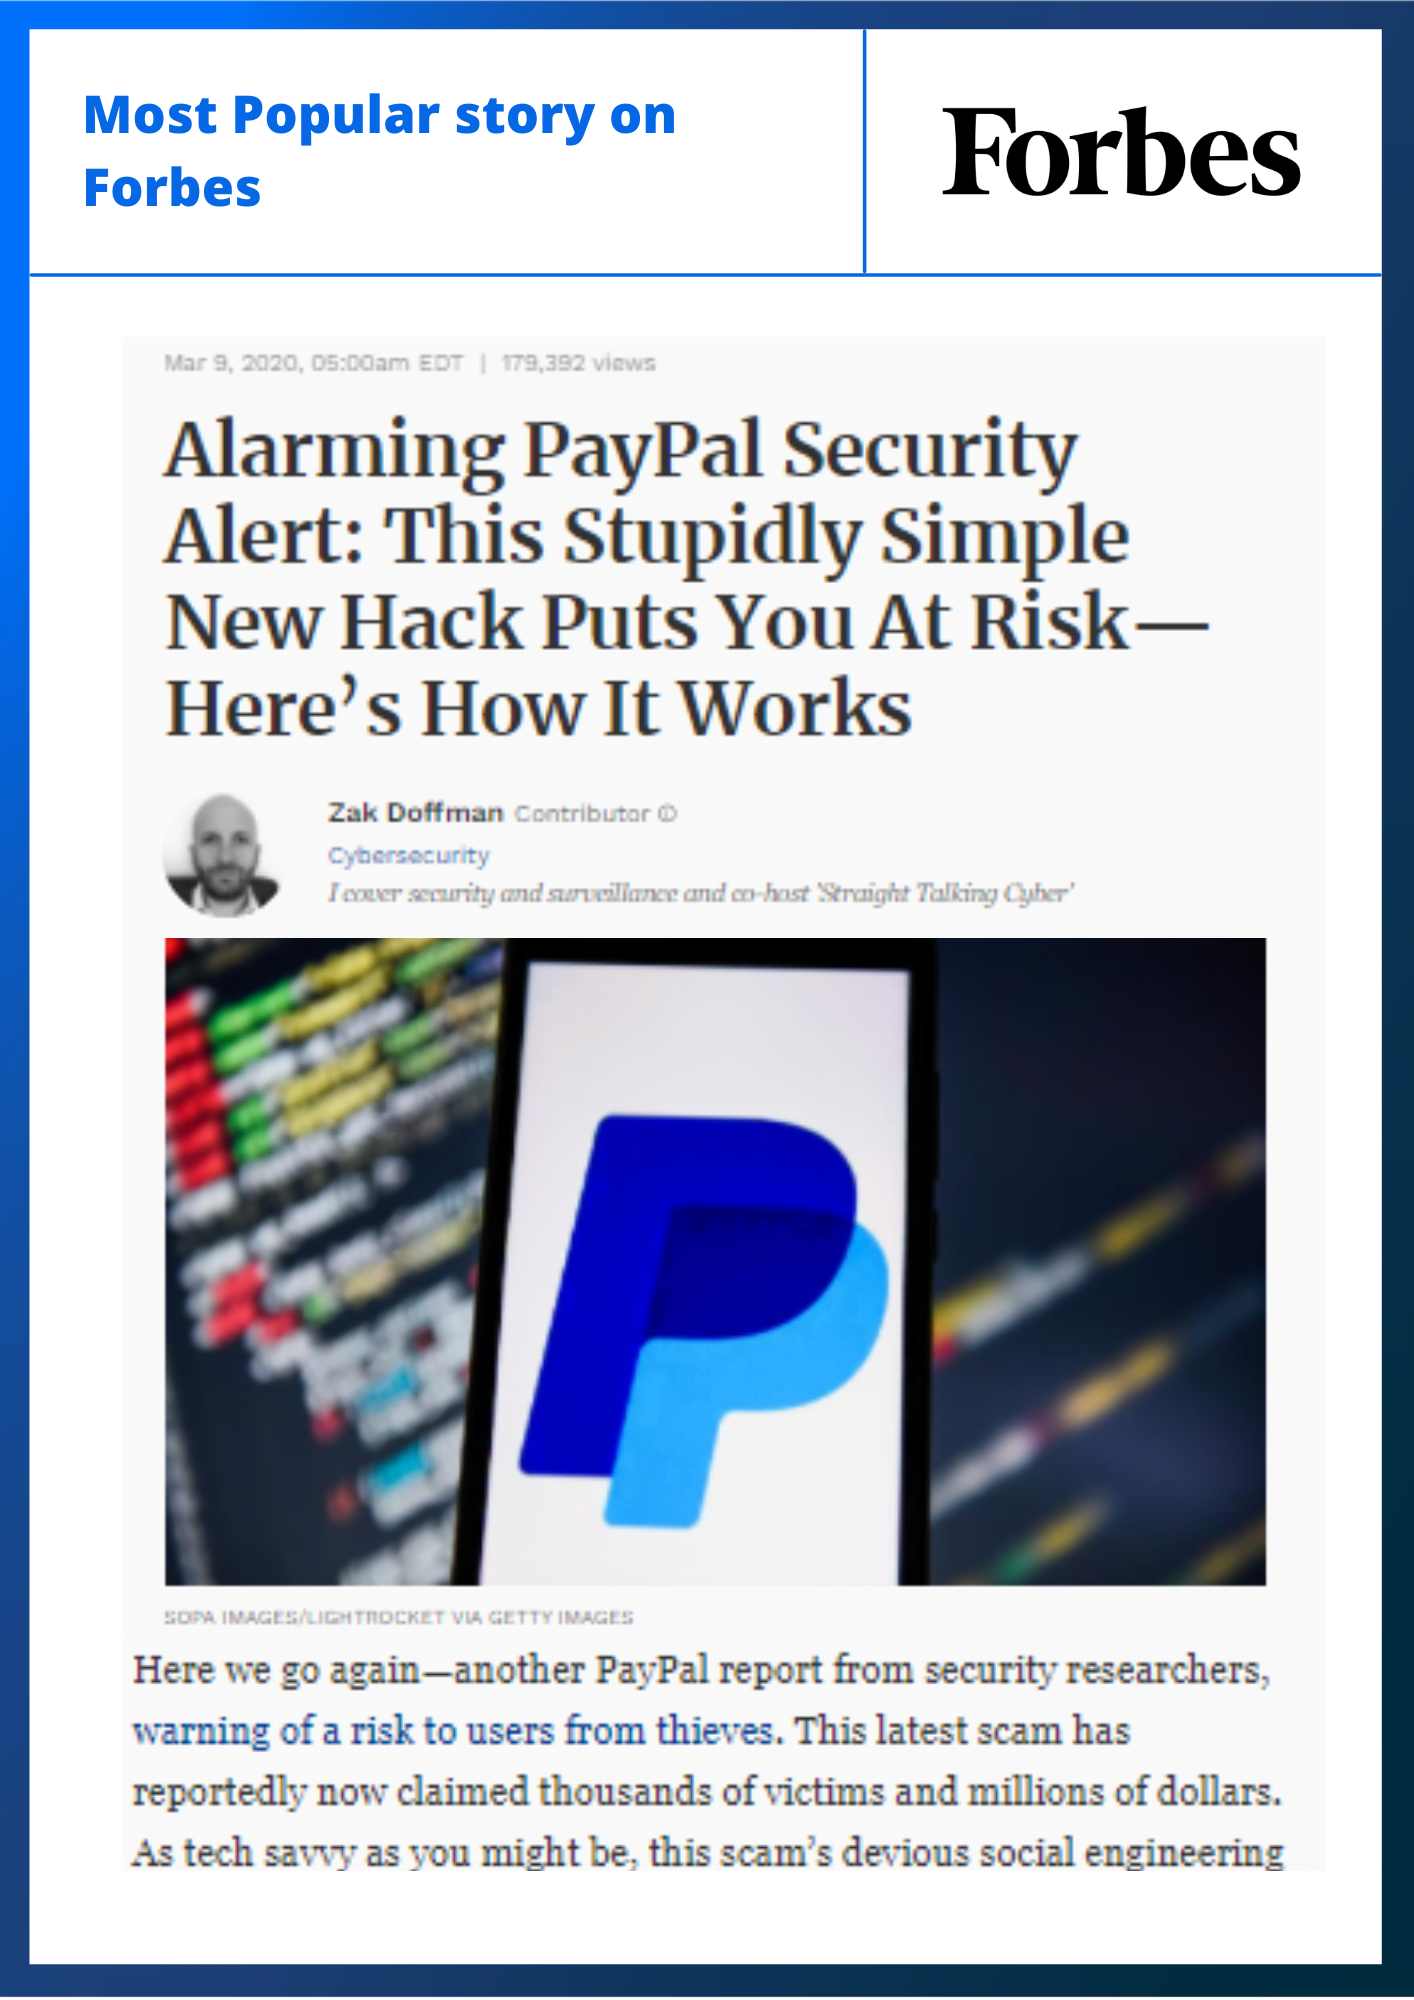 https://www.forbes.com/sites/zakdoffman/2020/03/09/alarming-paypal-scam-alert-this-stupidly-simple-new-hack-puts-you-at-risk-heres-how-it-works/#2333d6ce4436